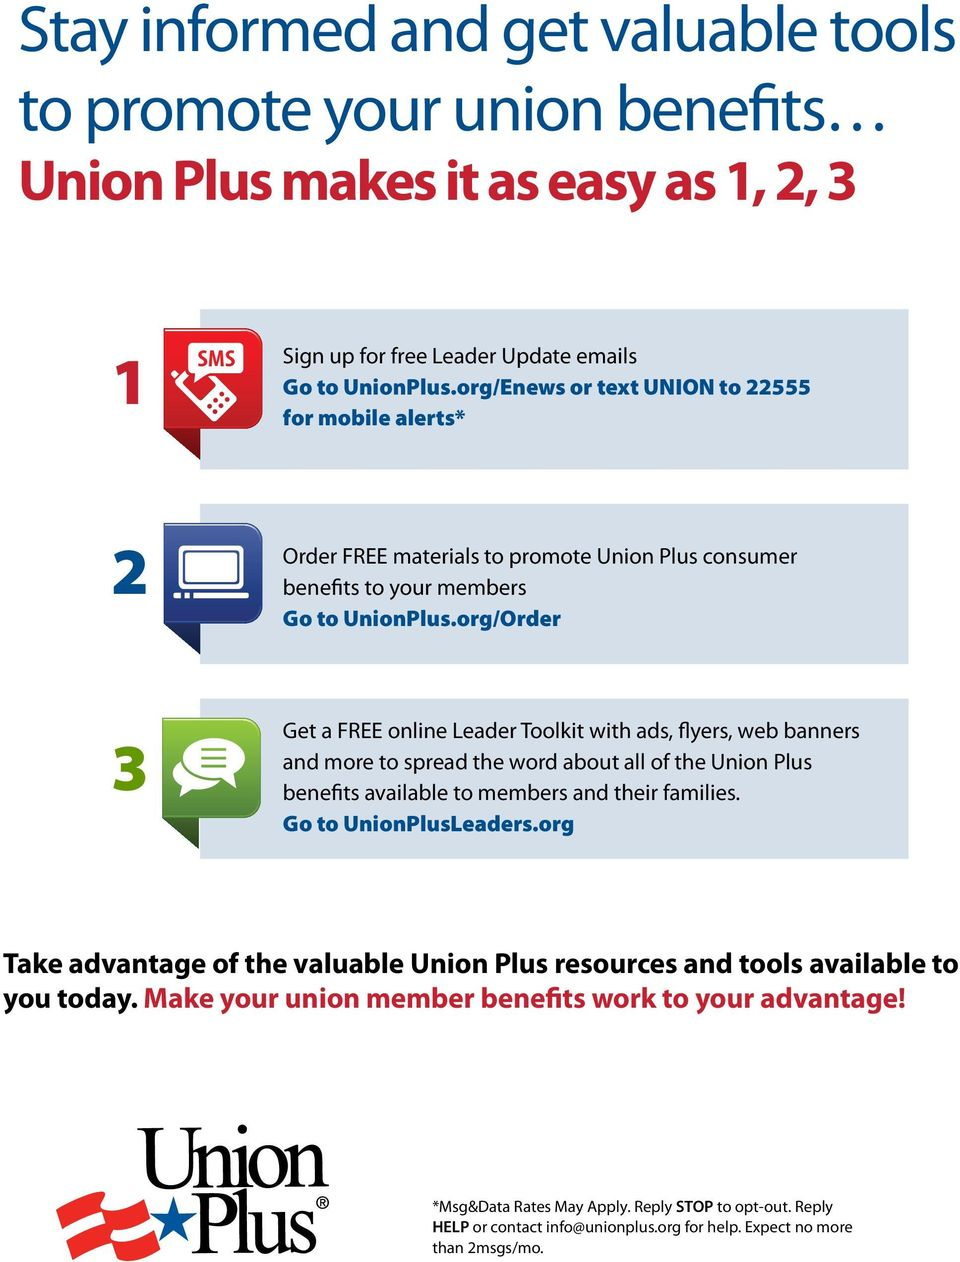 Union Plus Benefits >> Member Benefits Your Complete Guide To Union Plus Money Saving